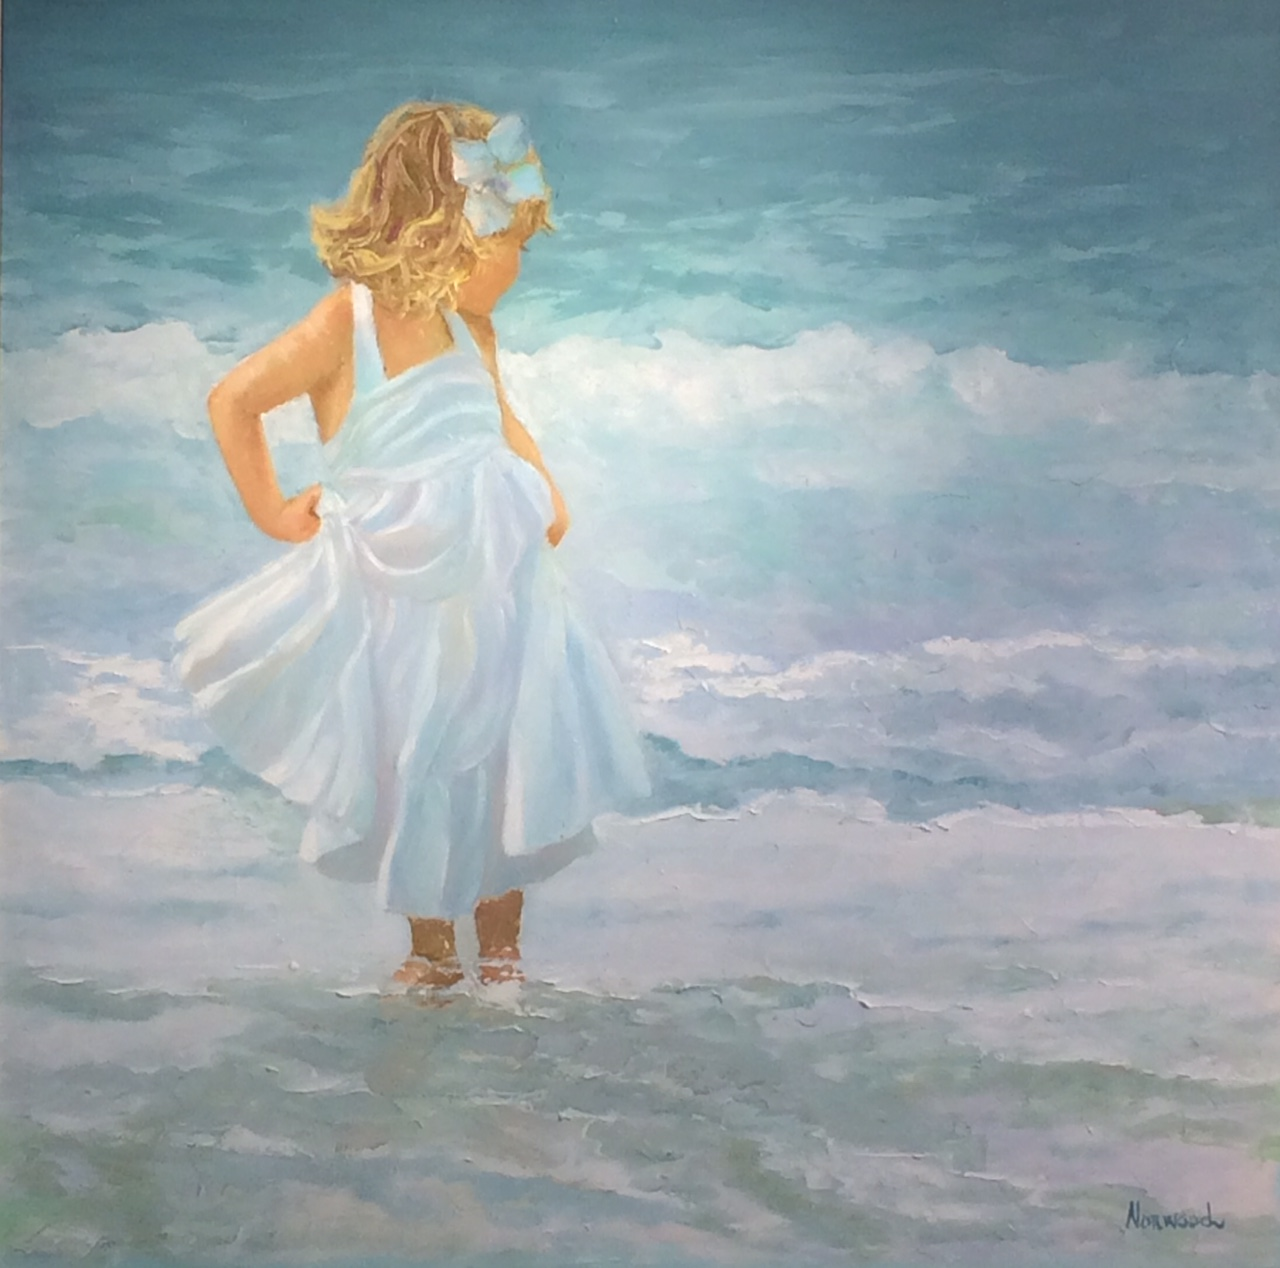 Being Careful with my Skirt, 48x48